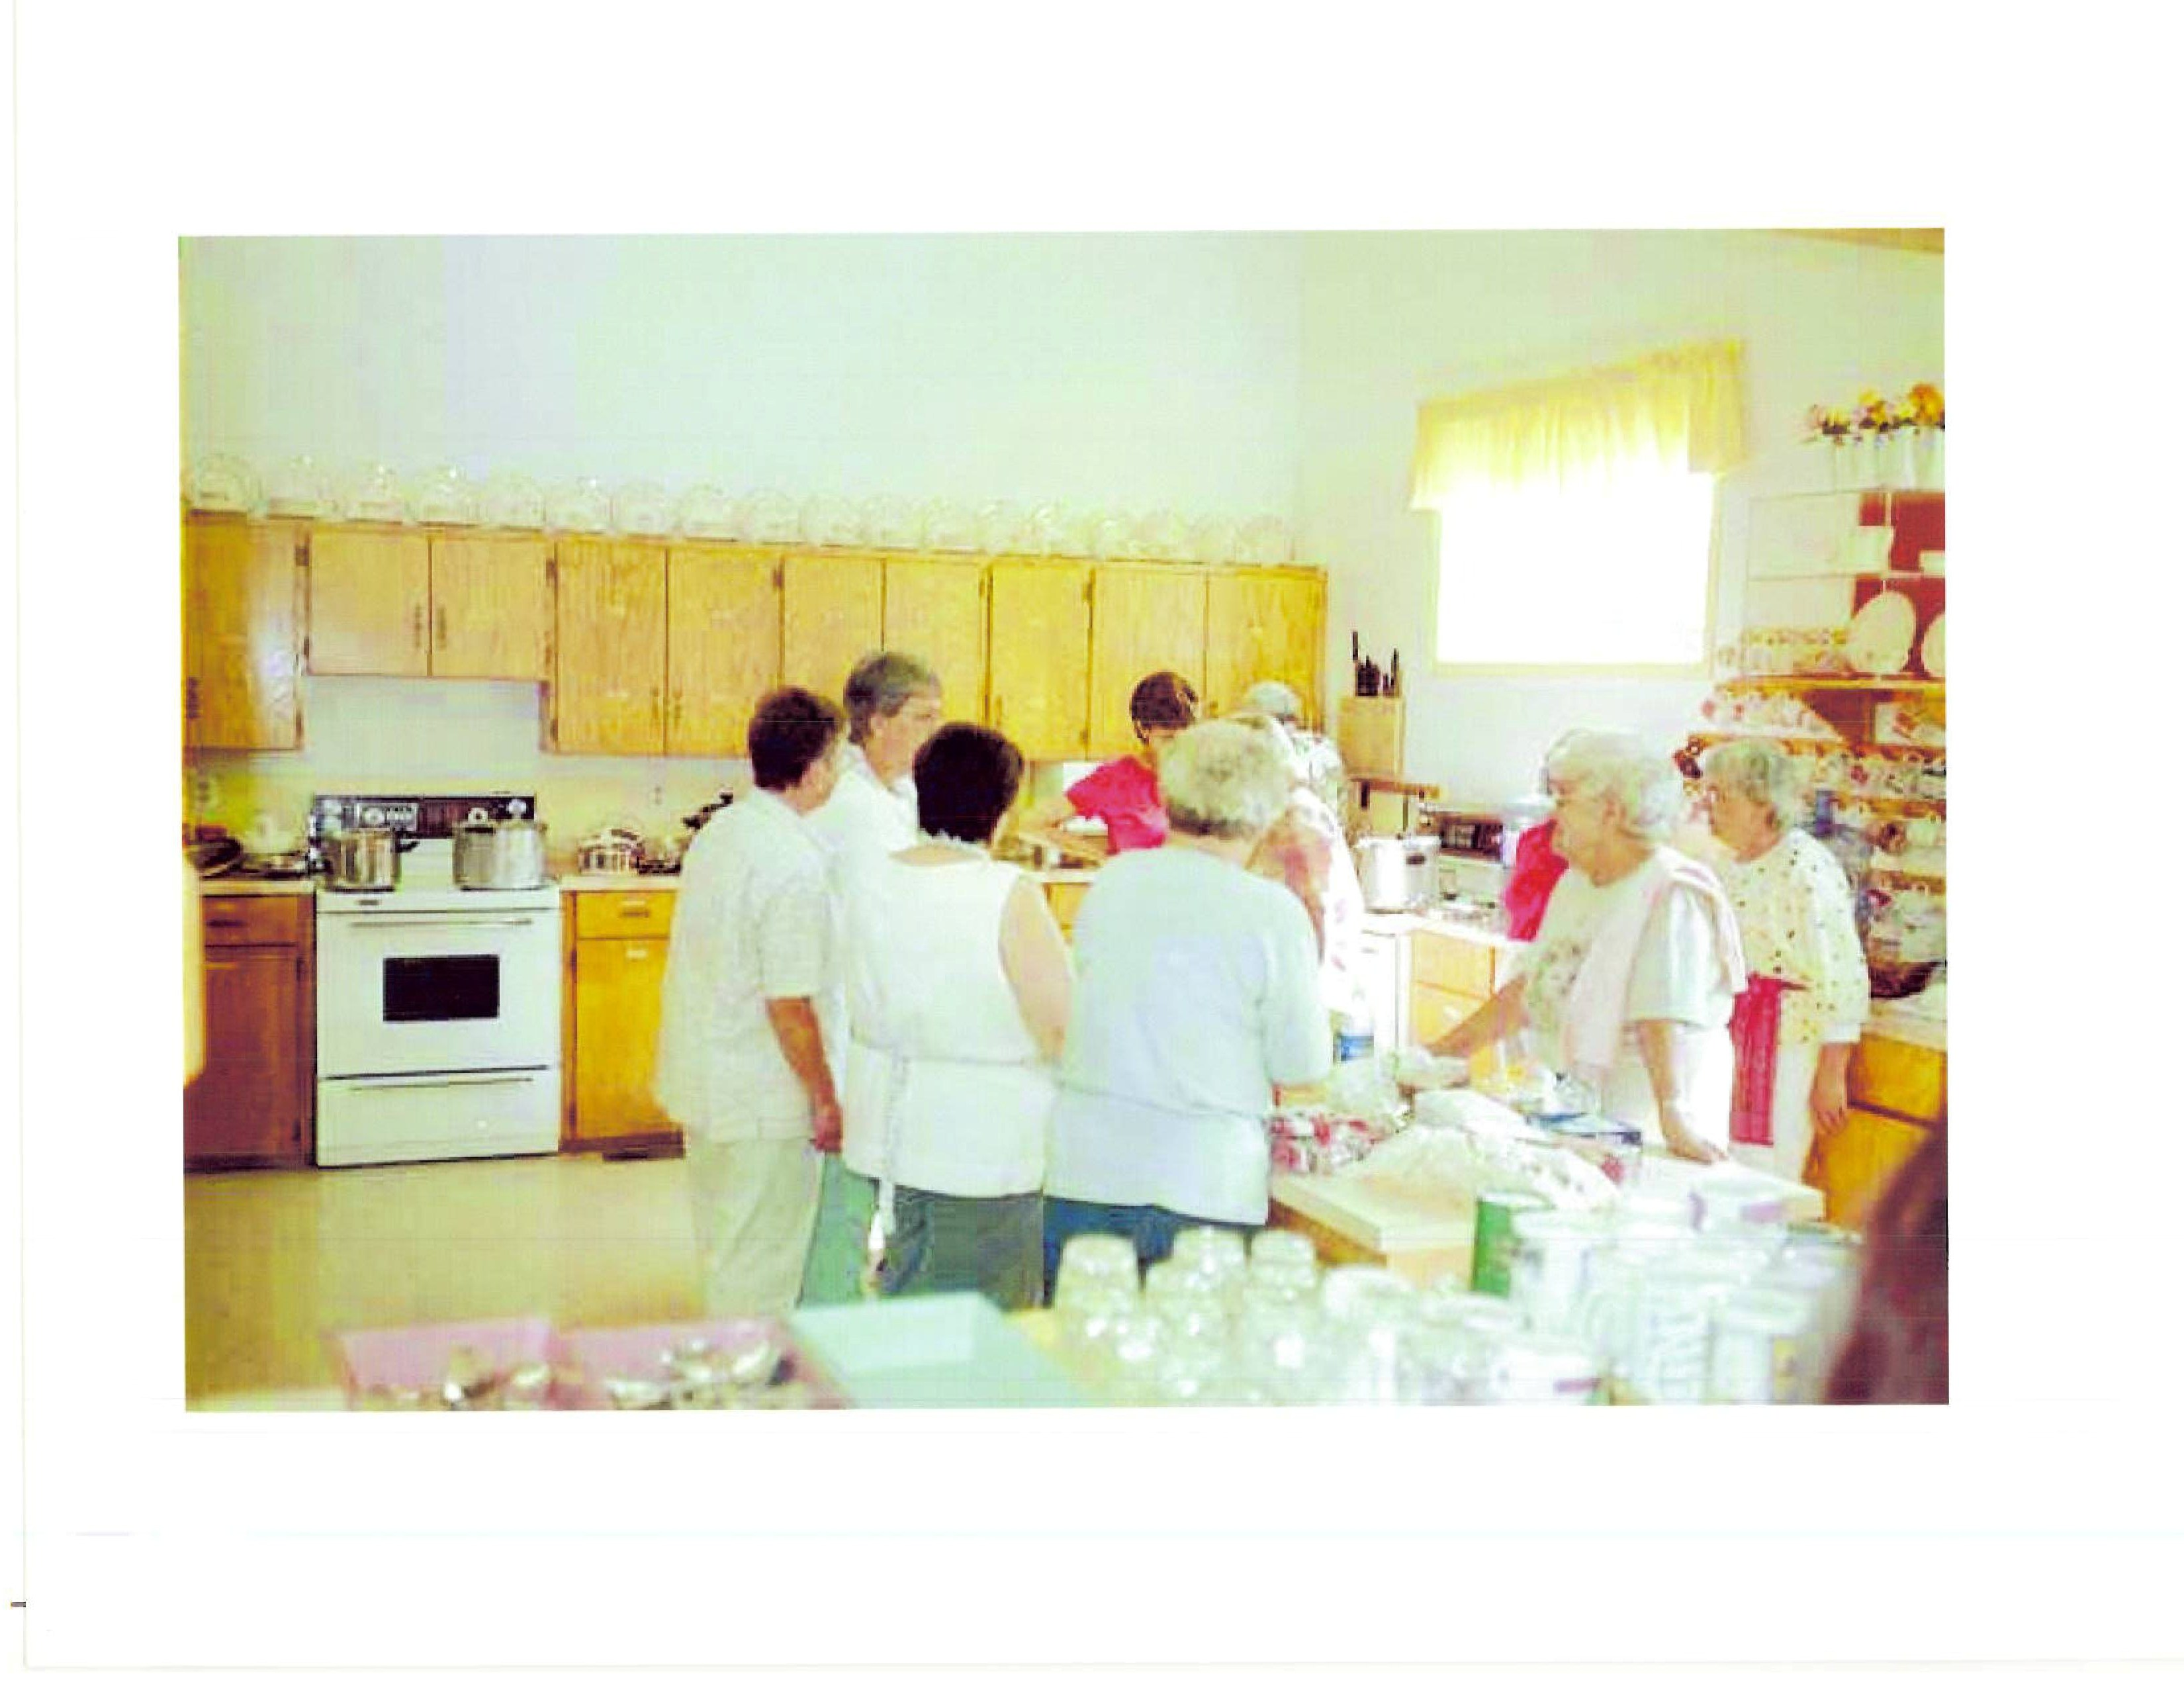 Local women from the church preparing hot meals. Photo courtesy Bob Beard and Richard Ross.